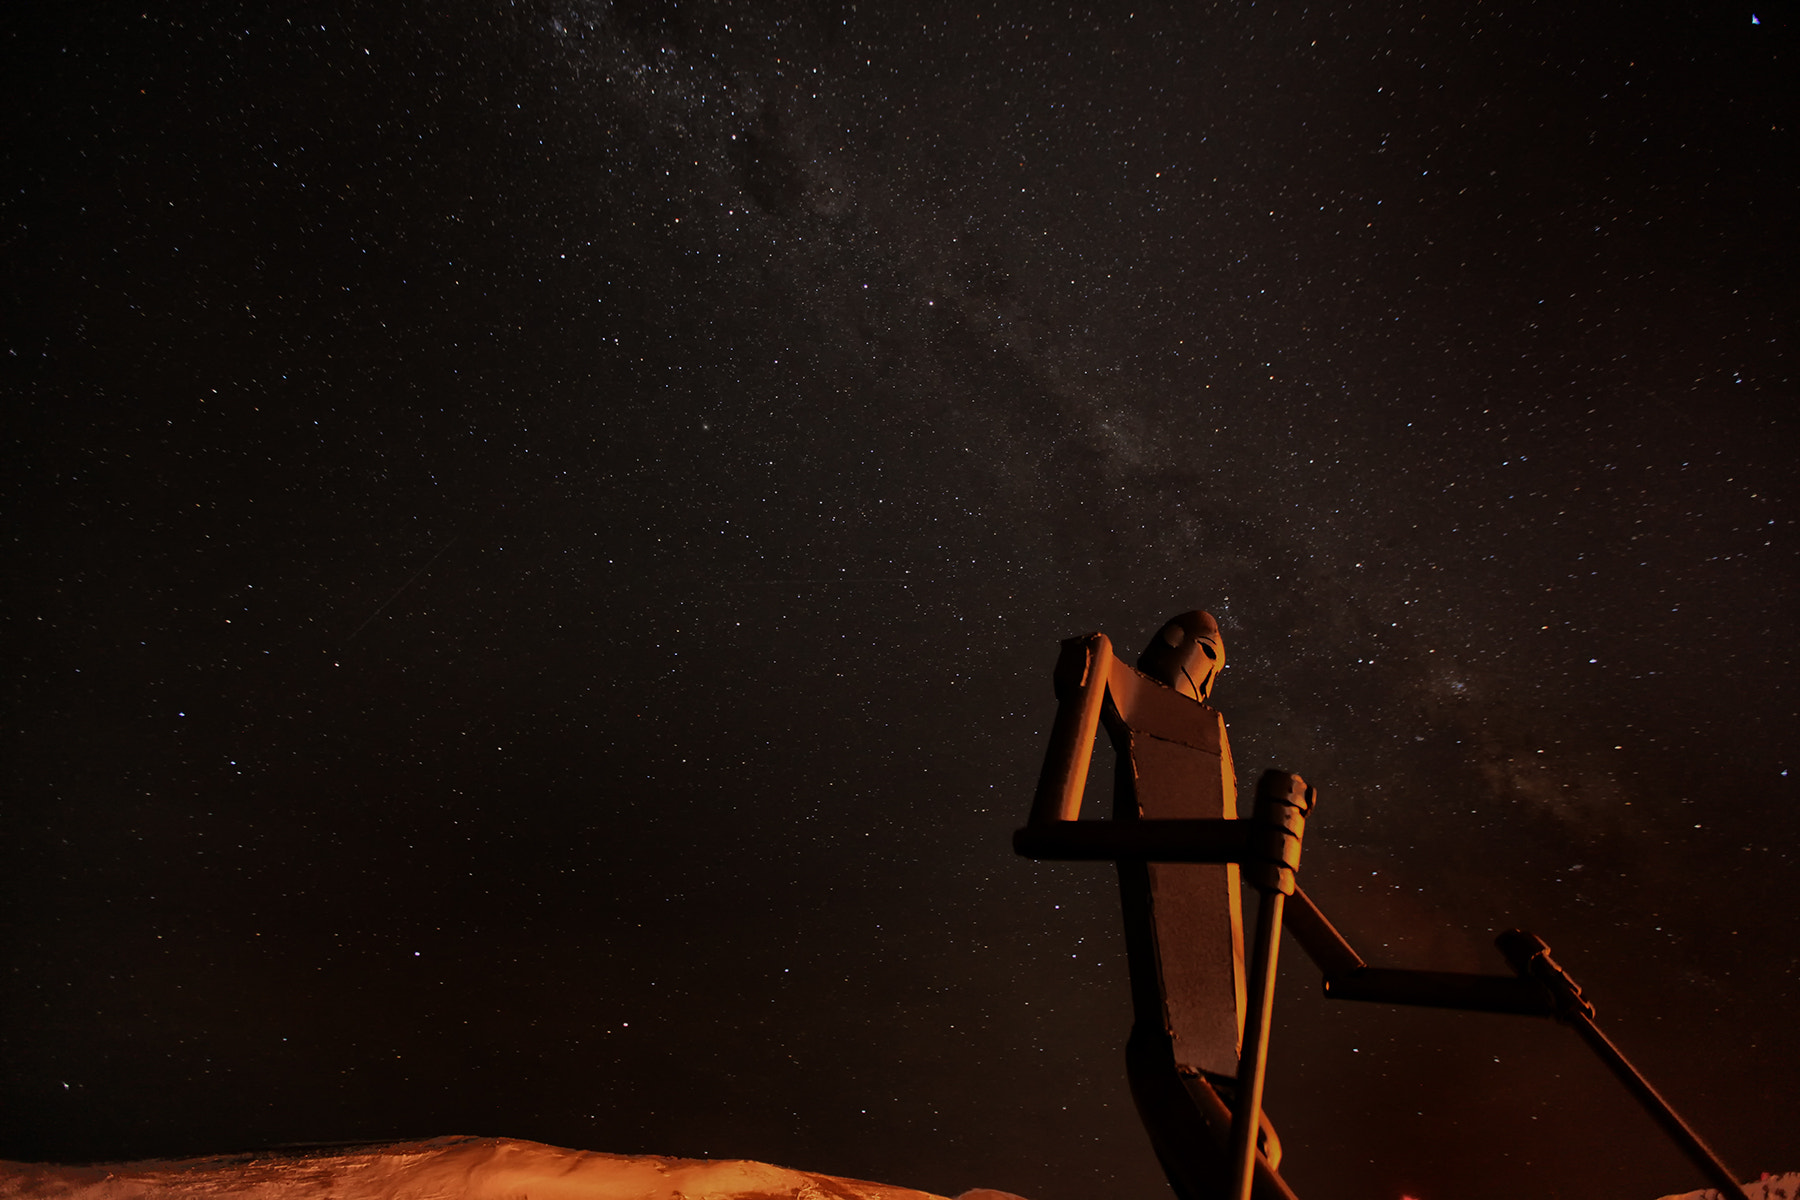 Photograph Skiing the Milky Way by Deven Stross on 500px